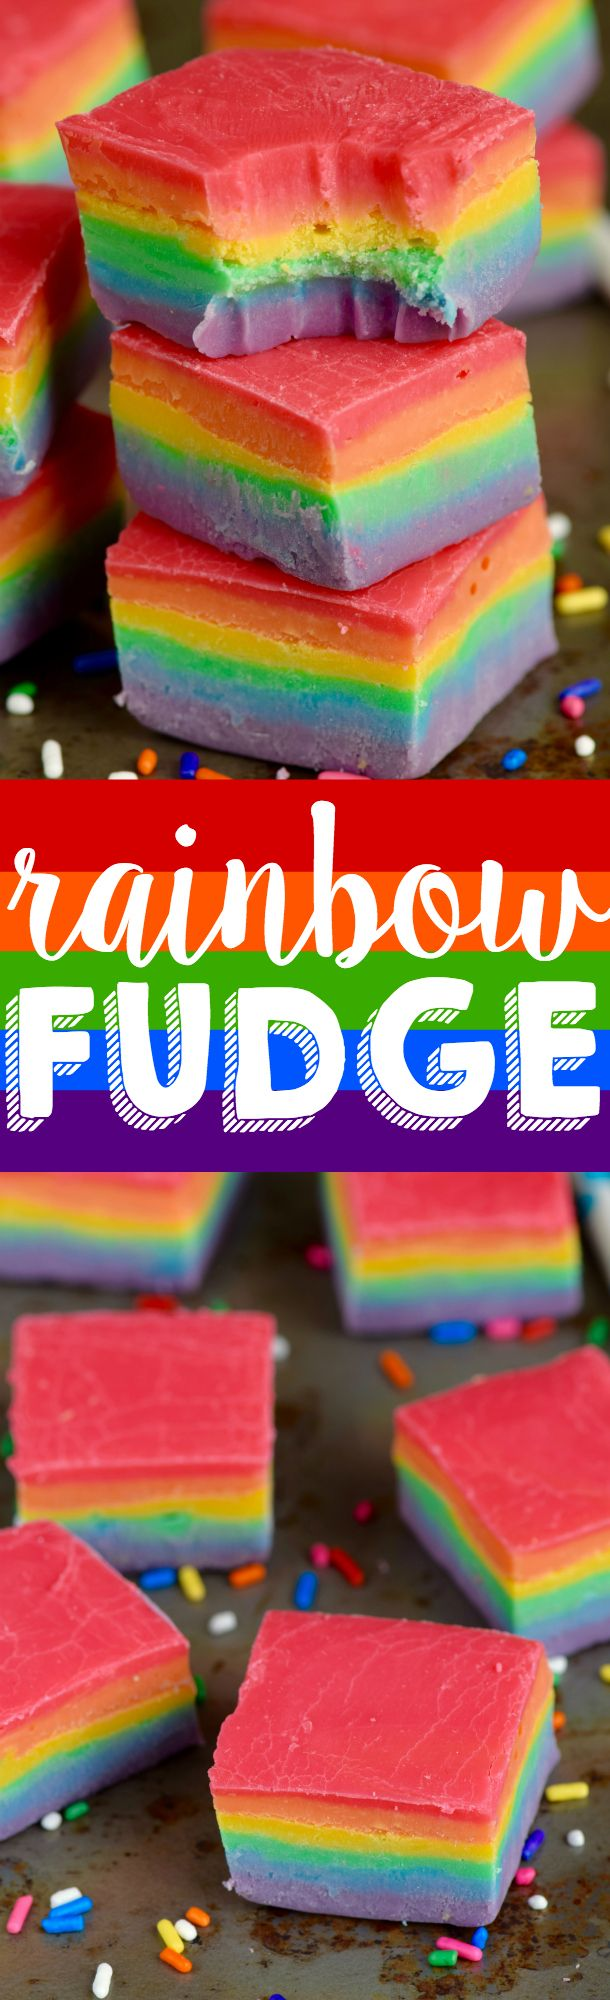 This fudge is super easy but will wow everyone! So easy the kids can do it!: